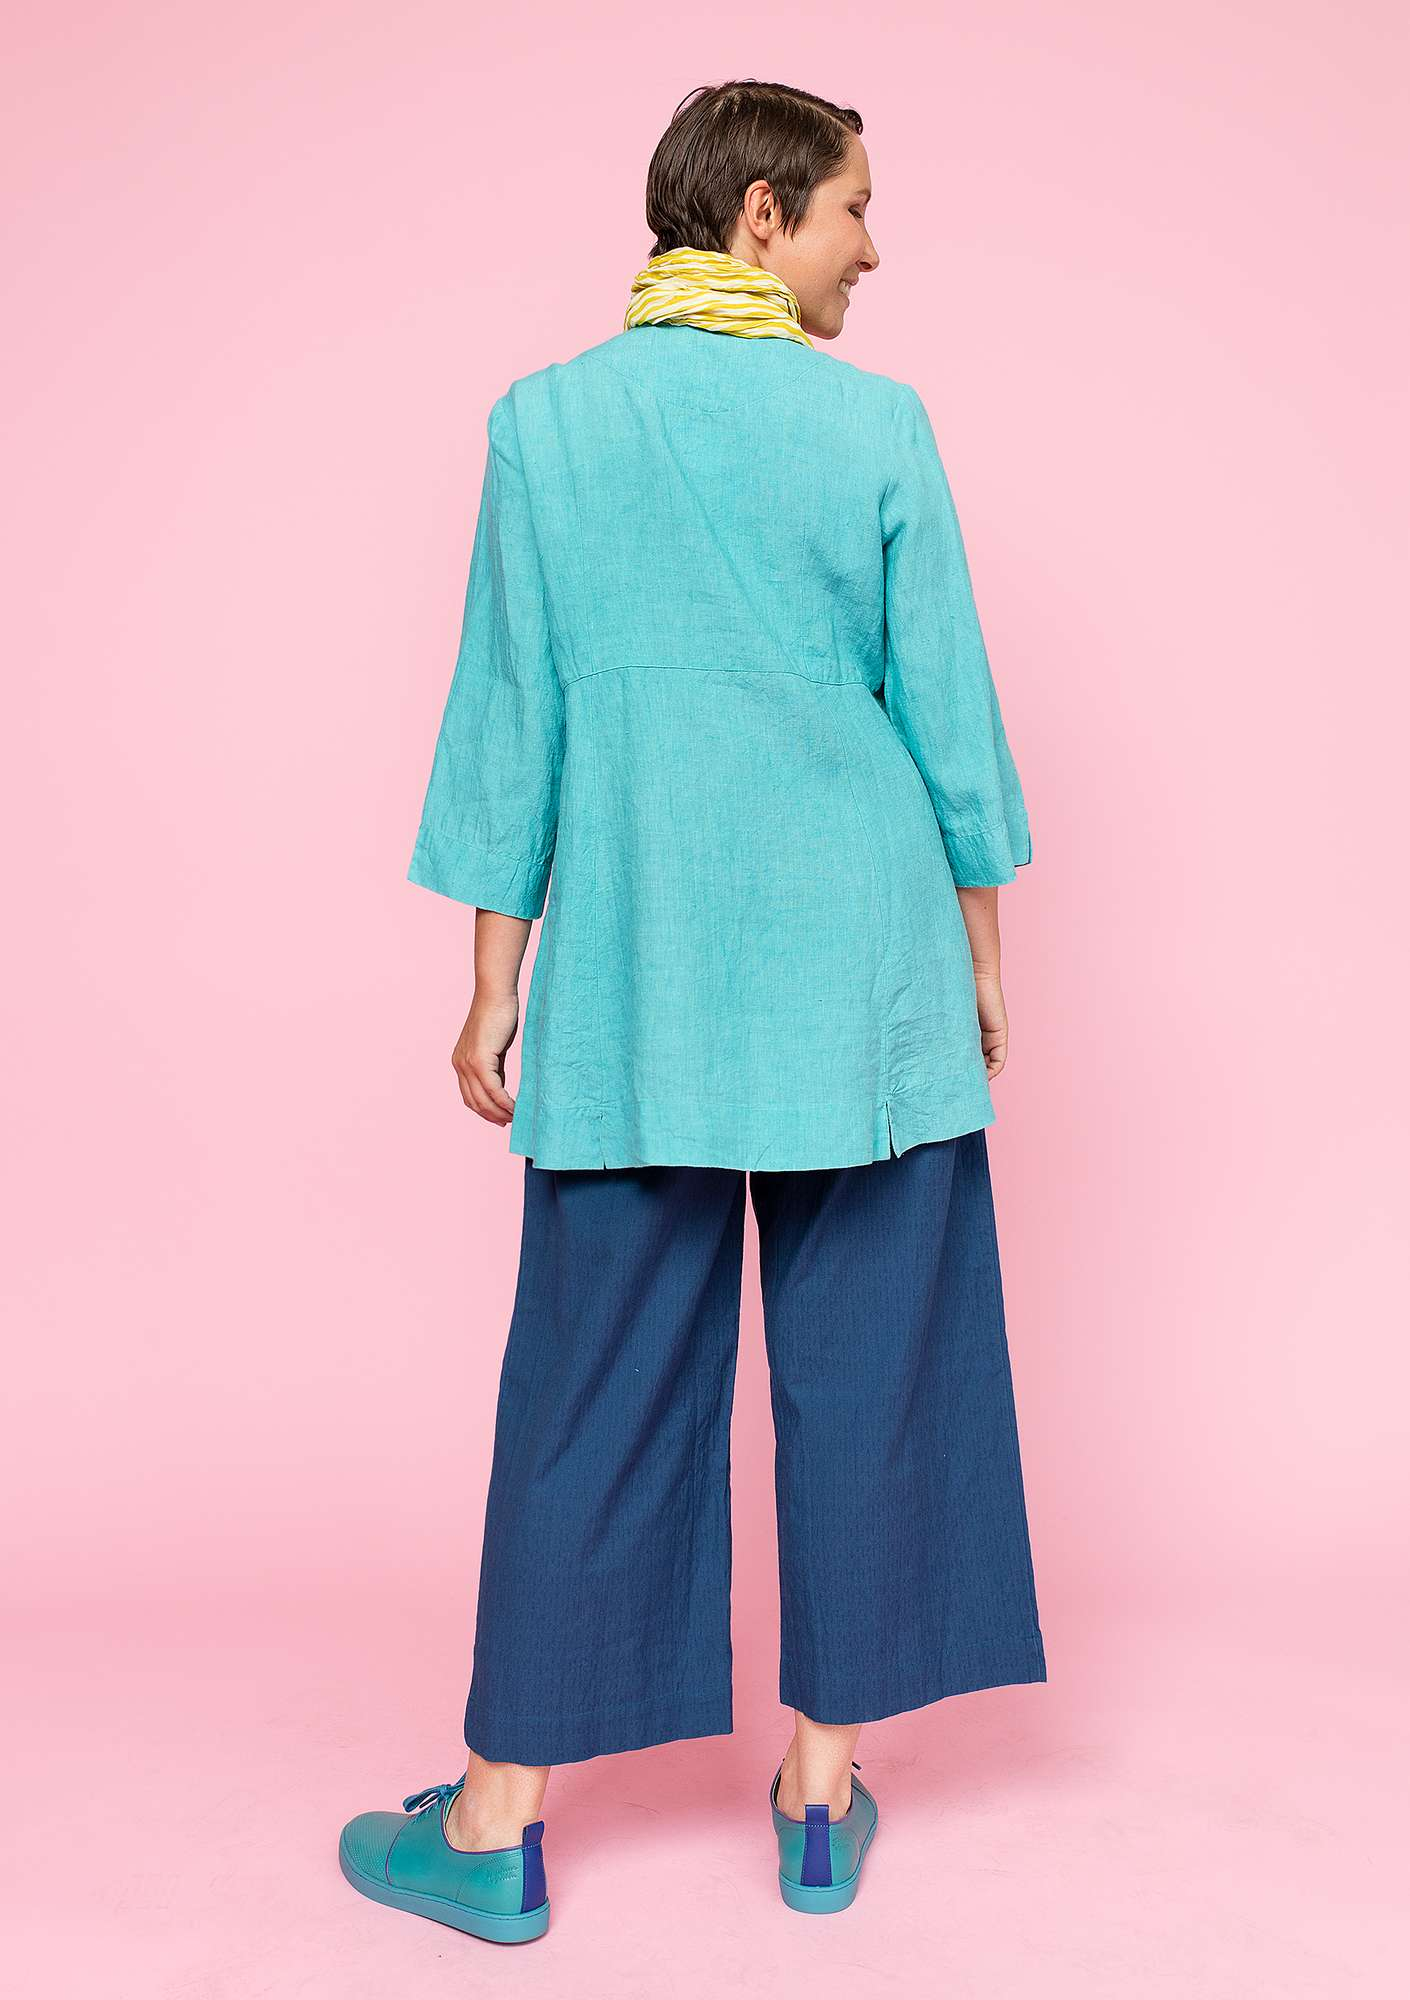 Tunic in linen turquoise